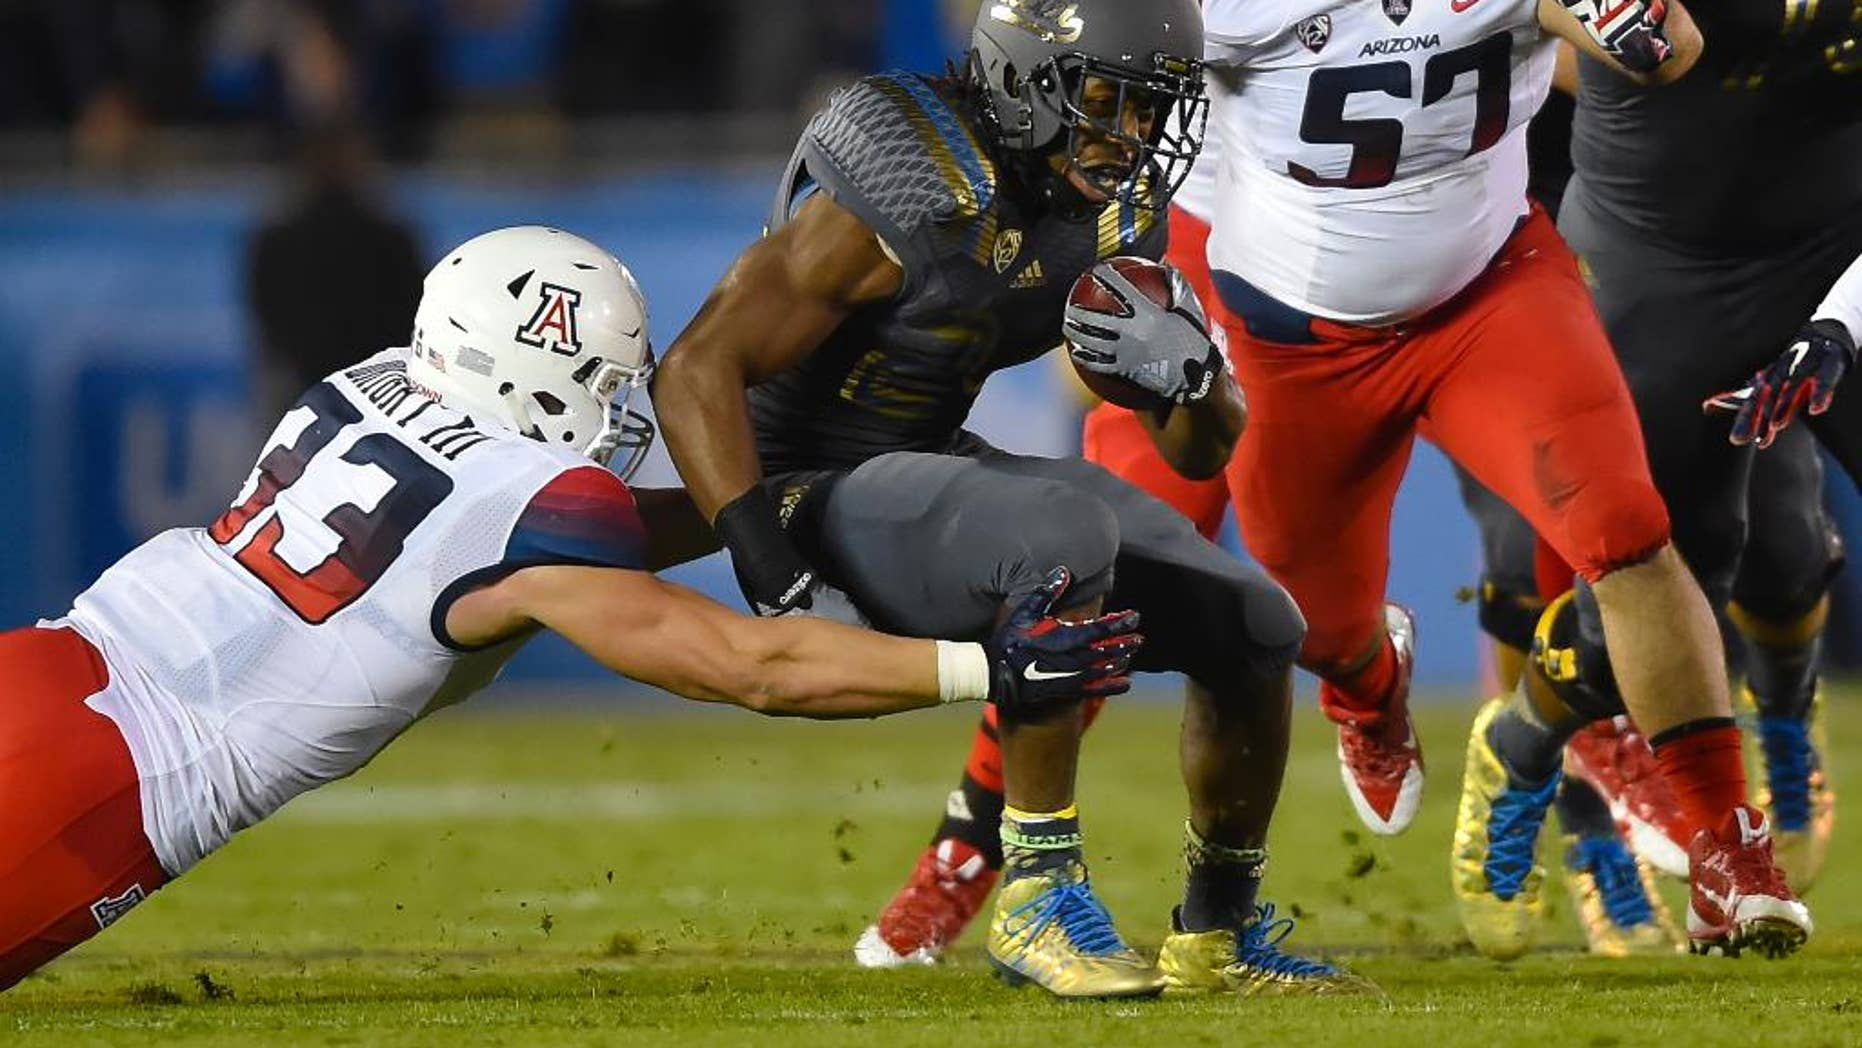 Arizona linebacker Scooby Wright III (33) and linebacker Cody Ippolito (57) close in on UCLA running back Paul Perkins, center, as he rushes during the first half of an NCAA college football game, Saturday, Nov. 1, 2014, in Pasadena, Calif. (AP Photo/Gus Ruelas)